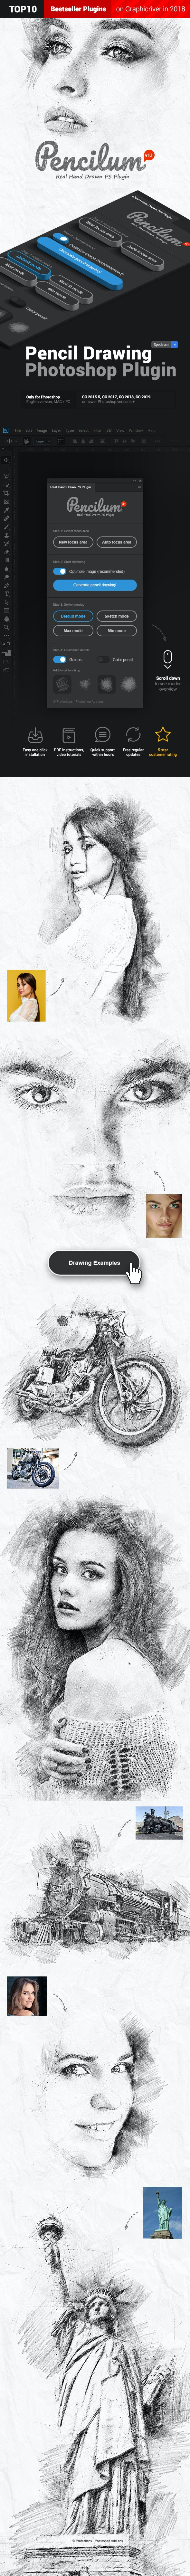 Pencilum - Real Hand Drawn Photoshop Plugin - Photo Effects Actions